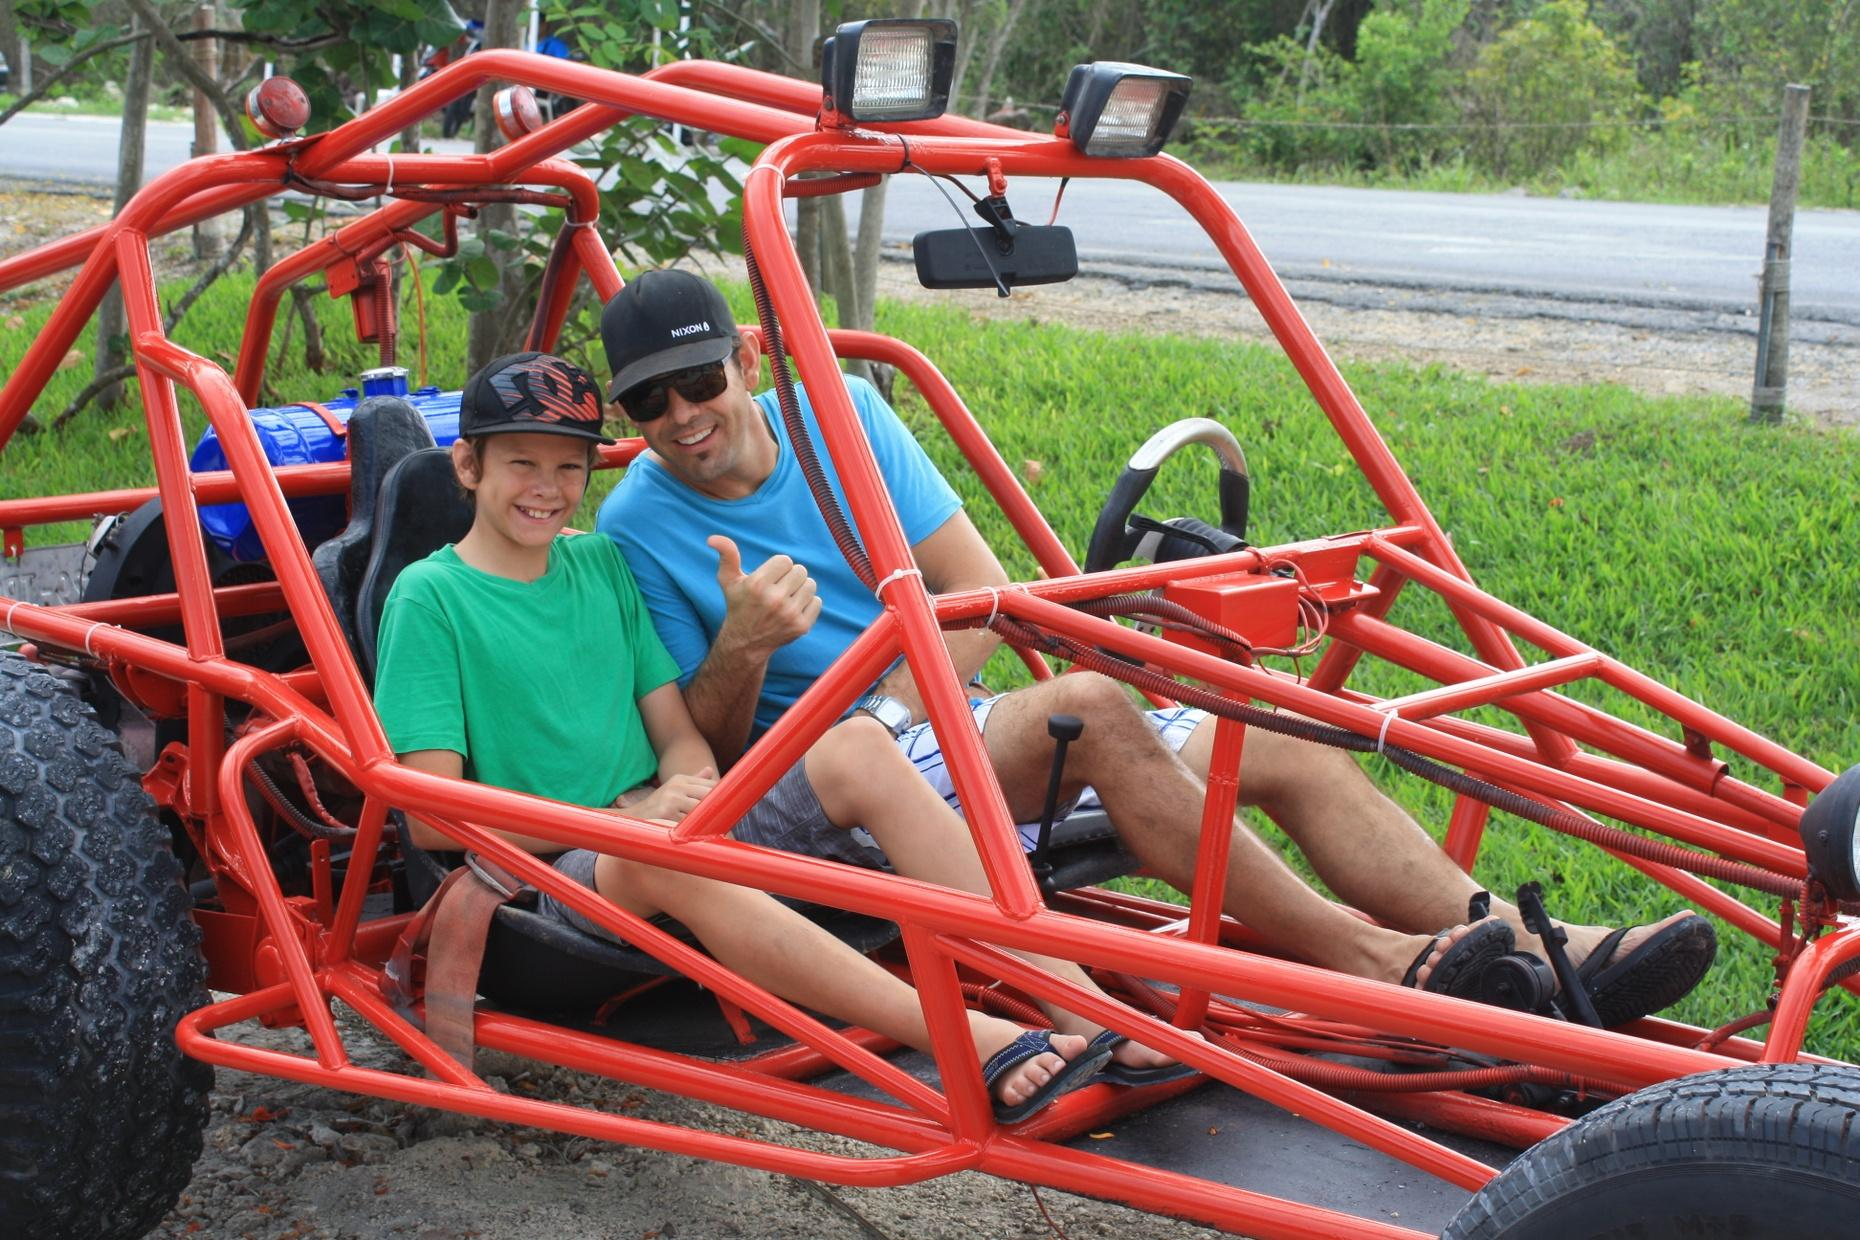 Cozumel Dune Buggy Off-Road Adventure